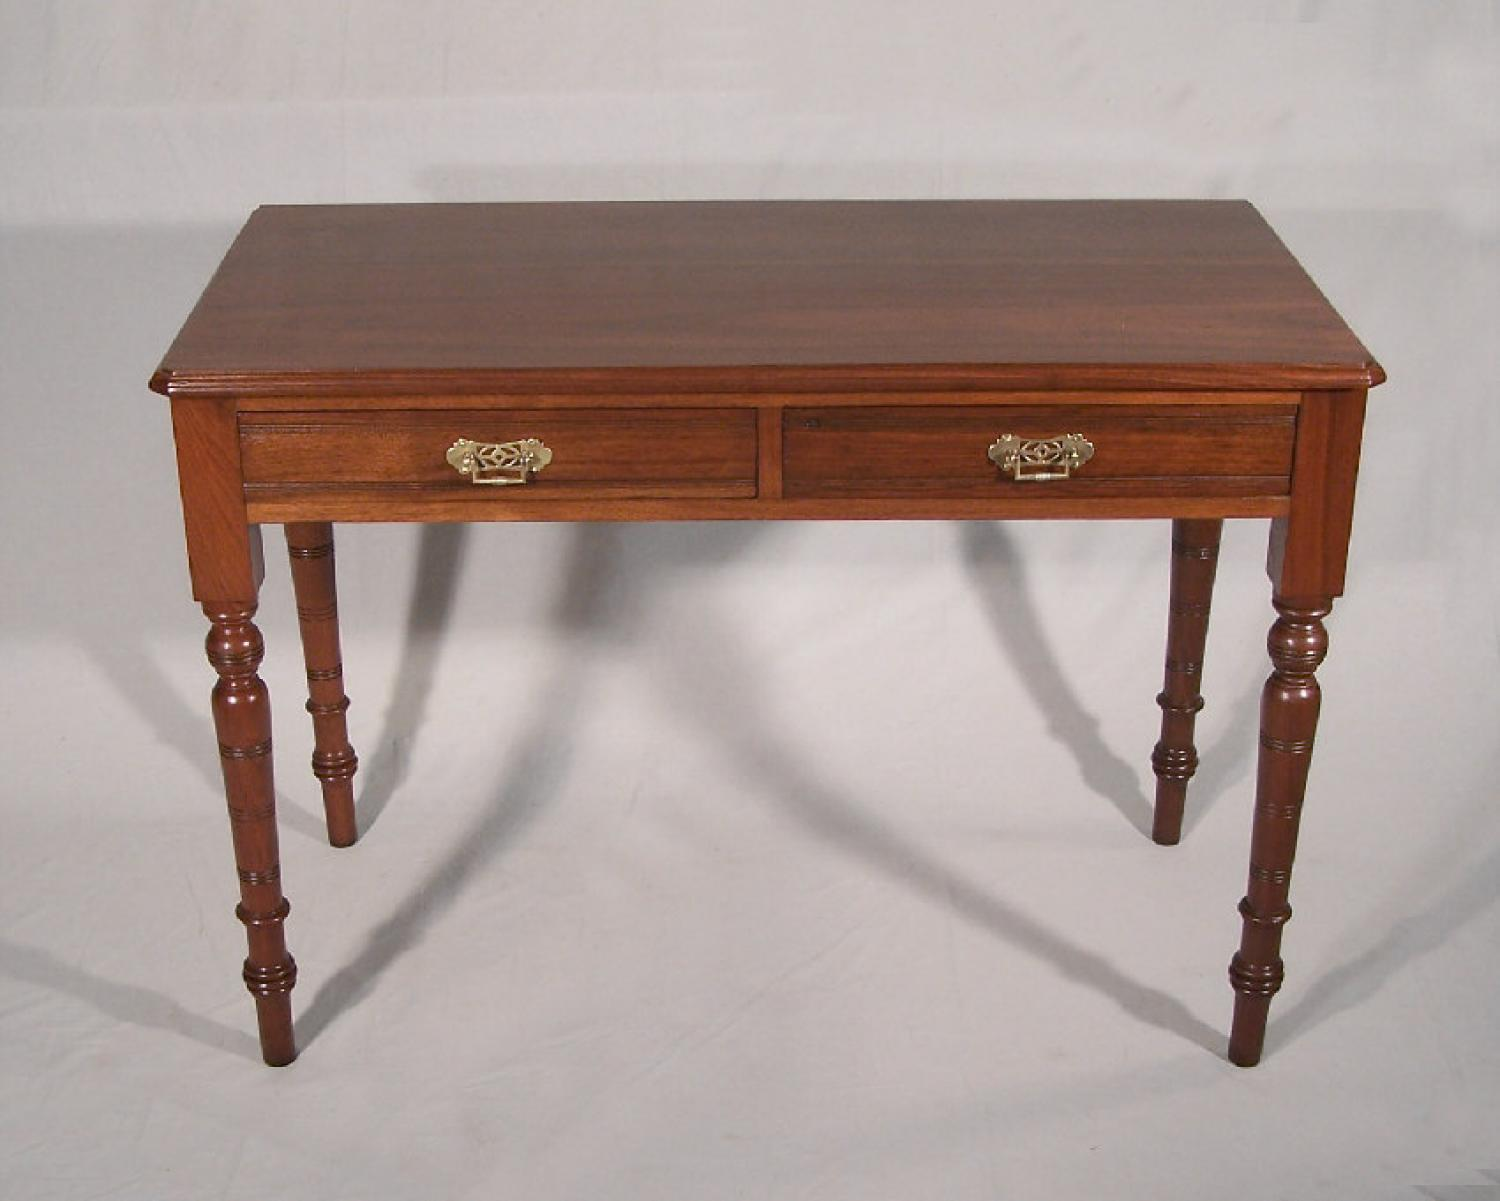 American black walnut library desk or table c1875